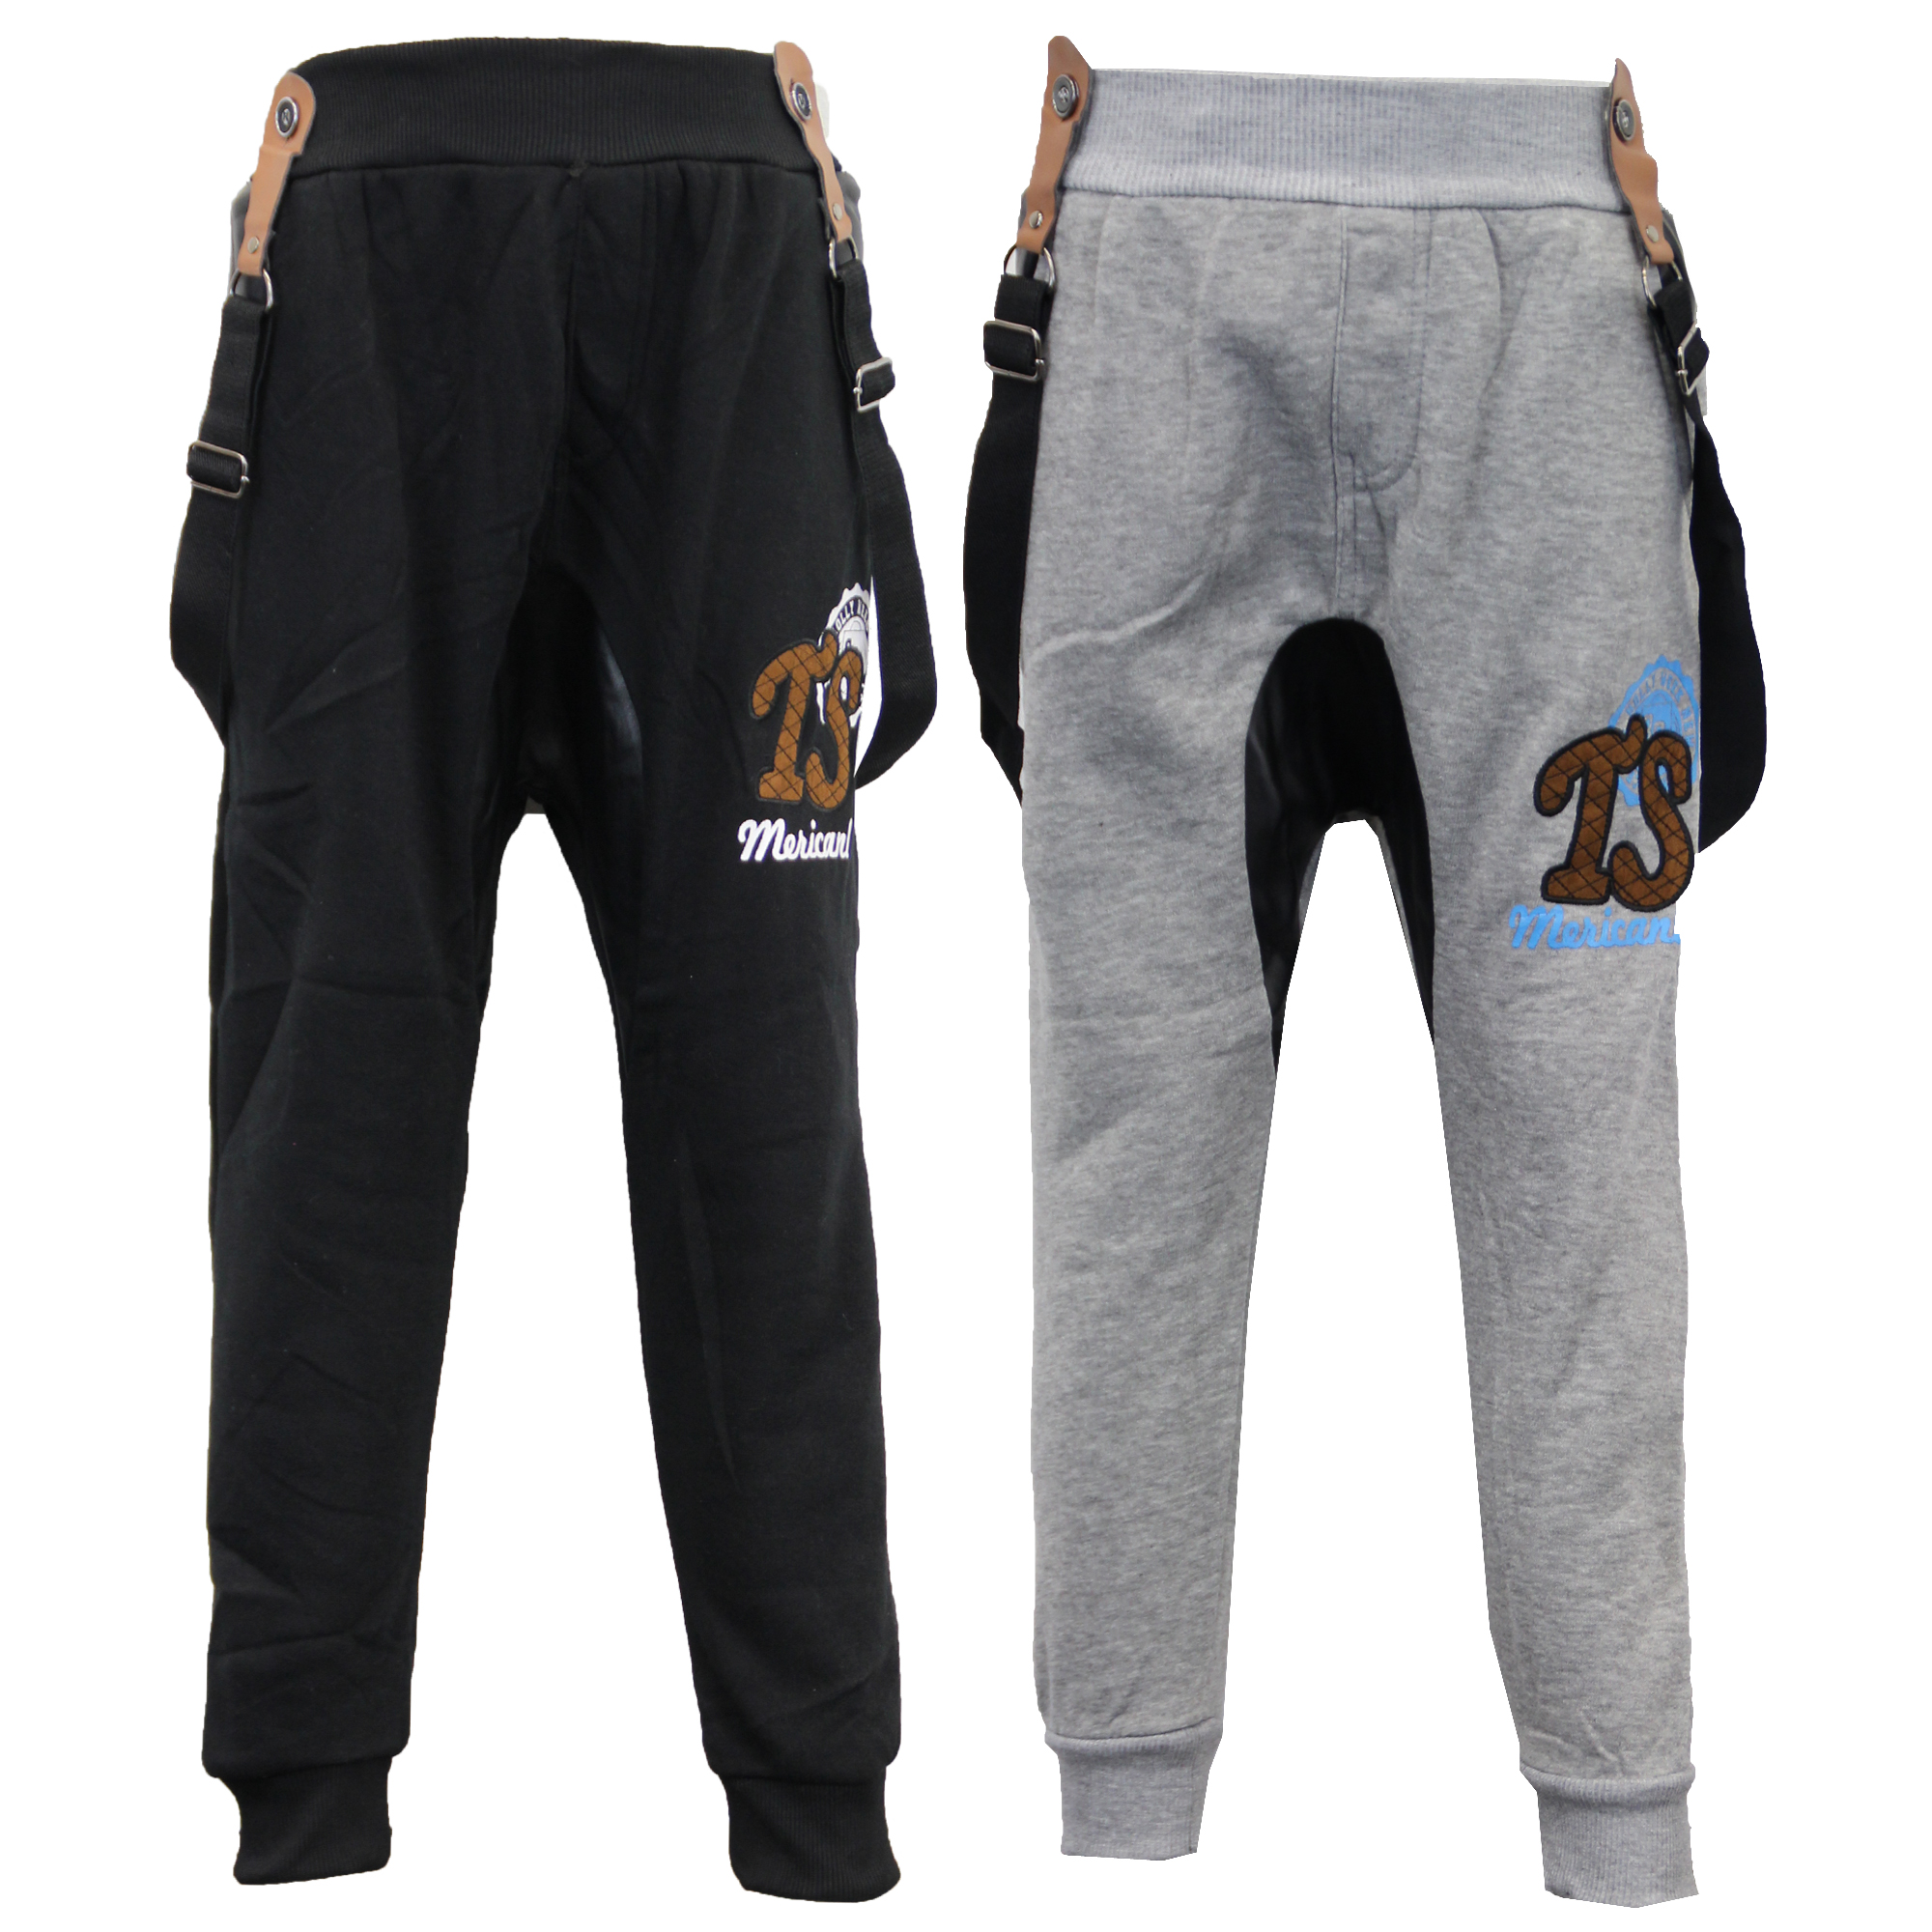 Shop for Kids' Fleece Pants at REI - FREE SHIPPING With $50 minimum purchase. Top quality, great selection and expert advice you can trust. % Satisfaction Guarantee.